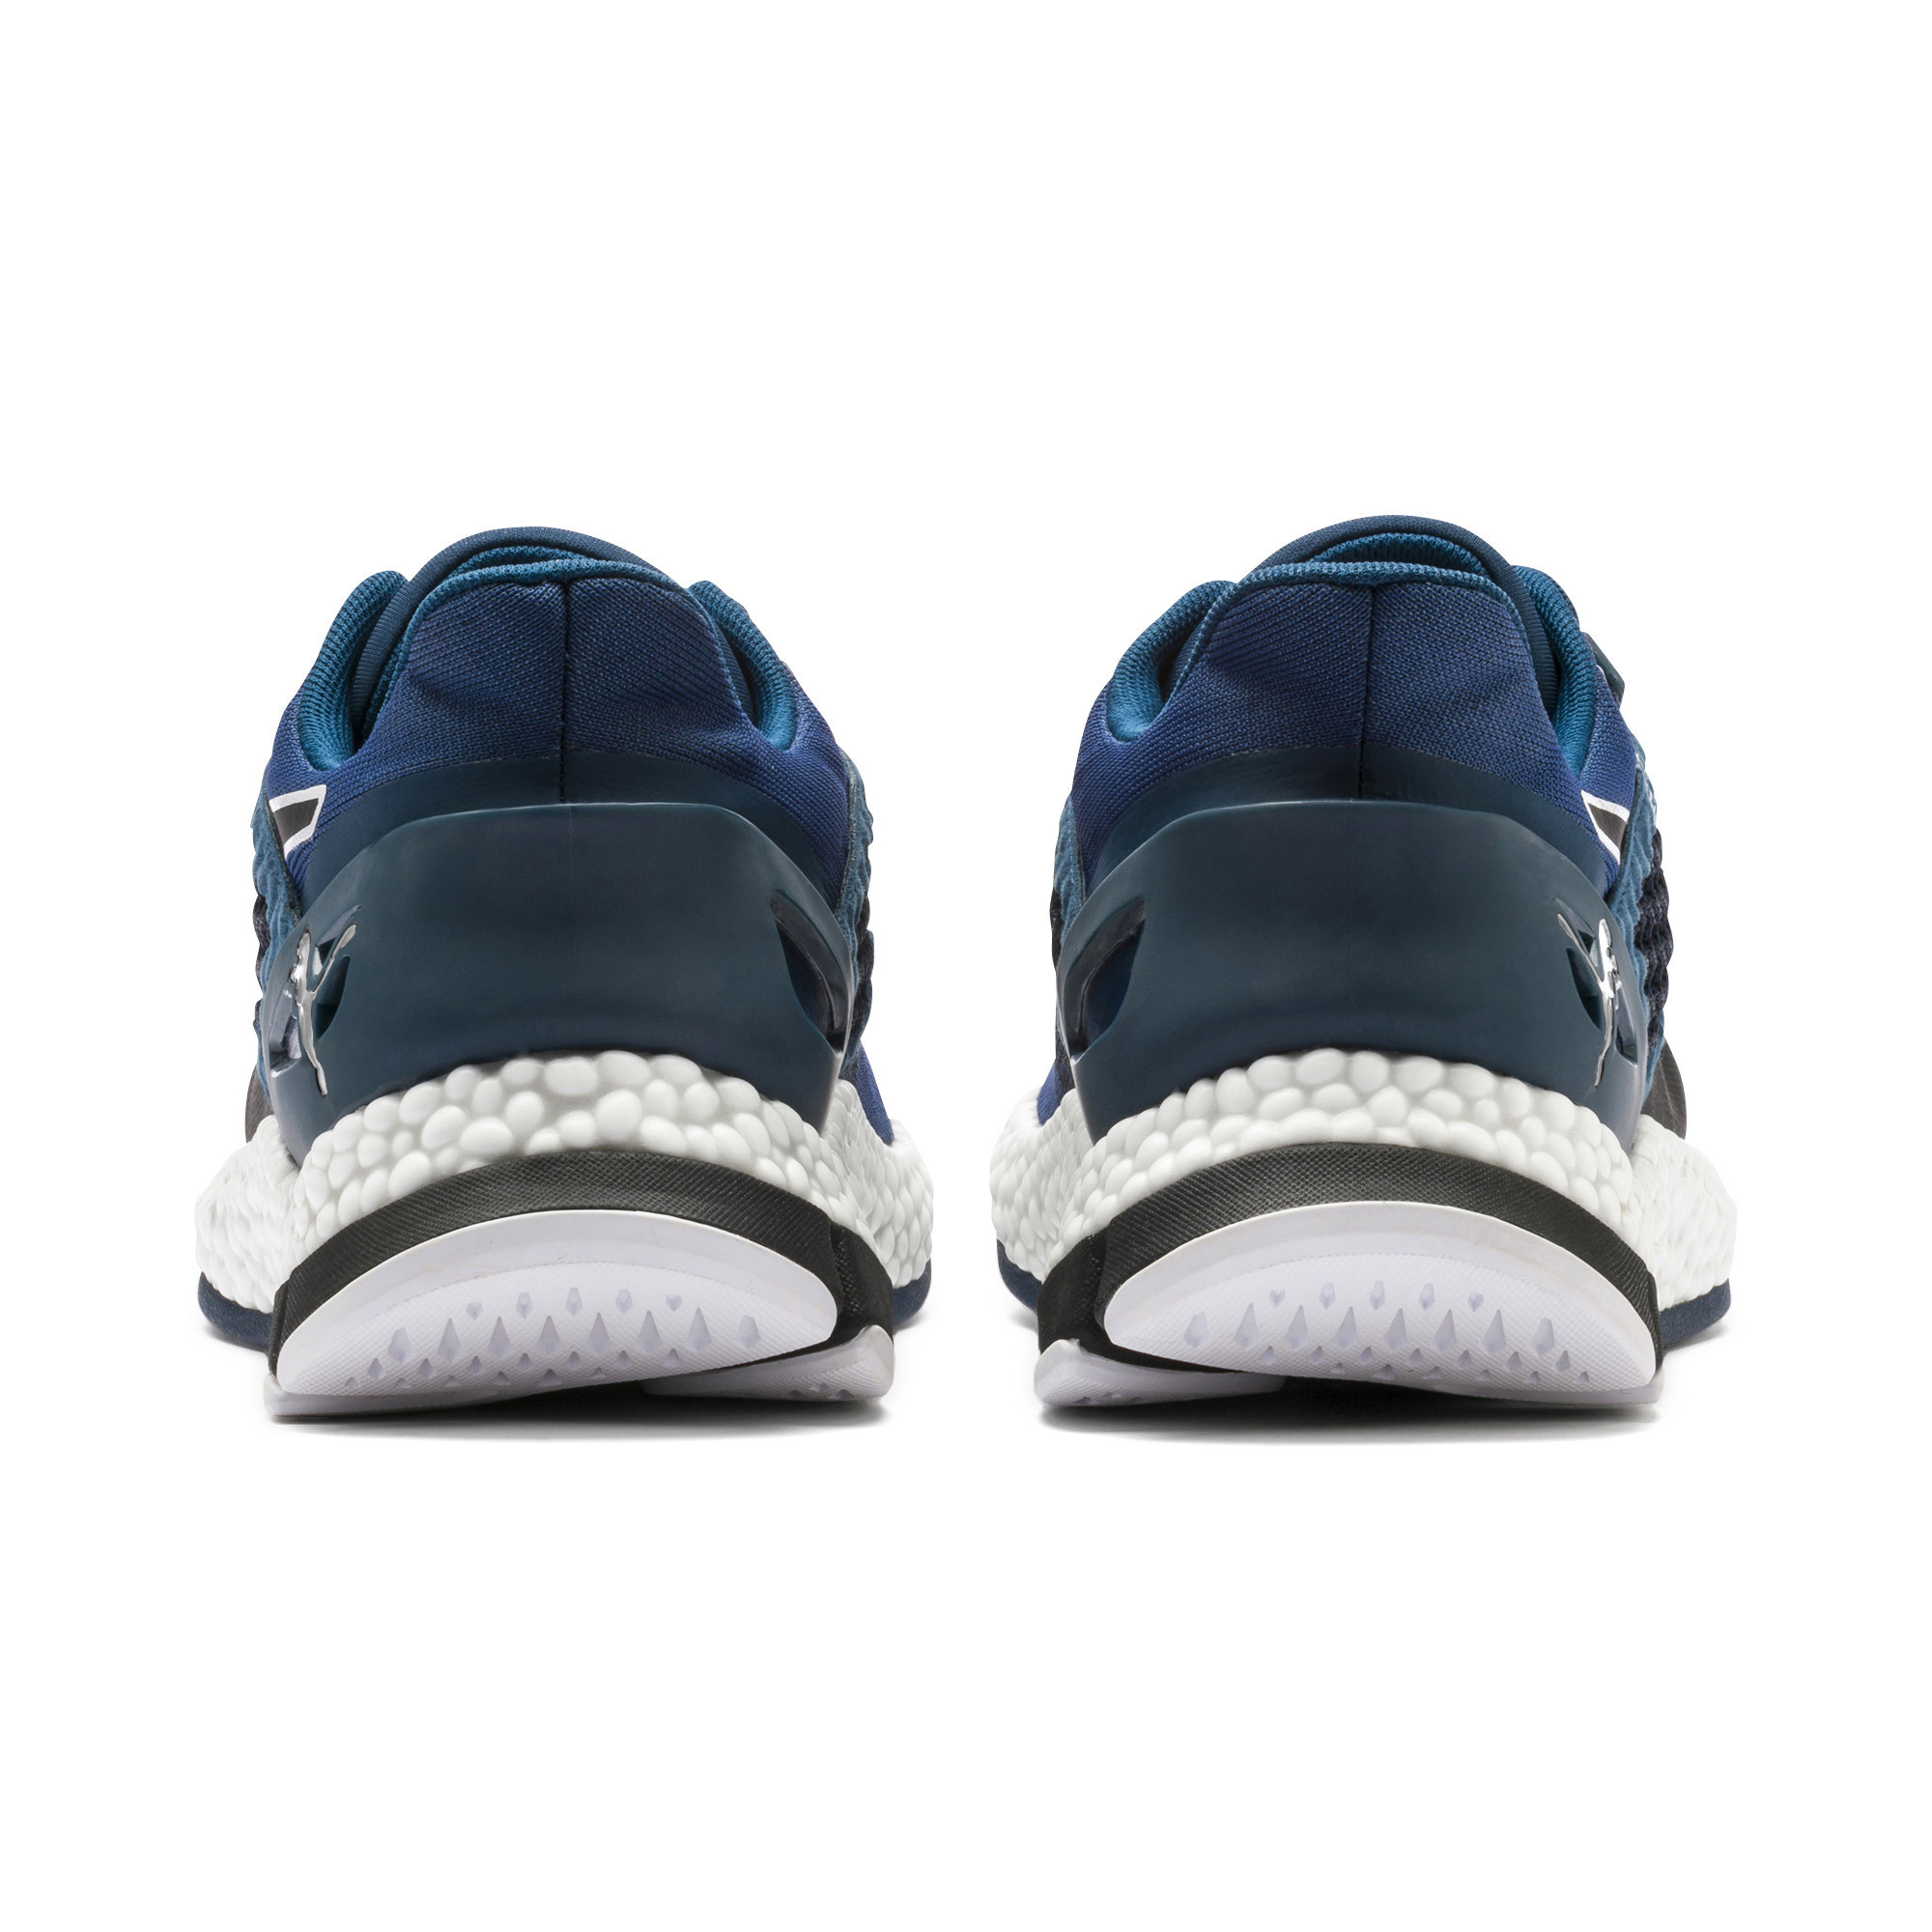 PUMA-HYBRID-Astro-Men-039-s-Running-Shoes-Men-Shoe-Running thumbnail 5